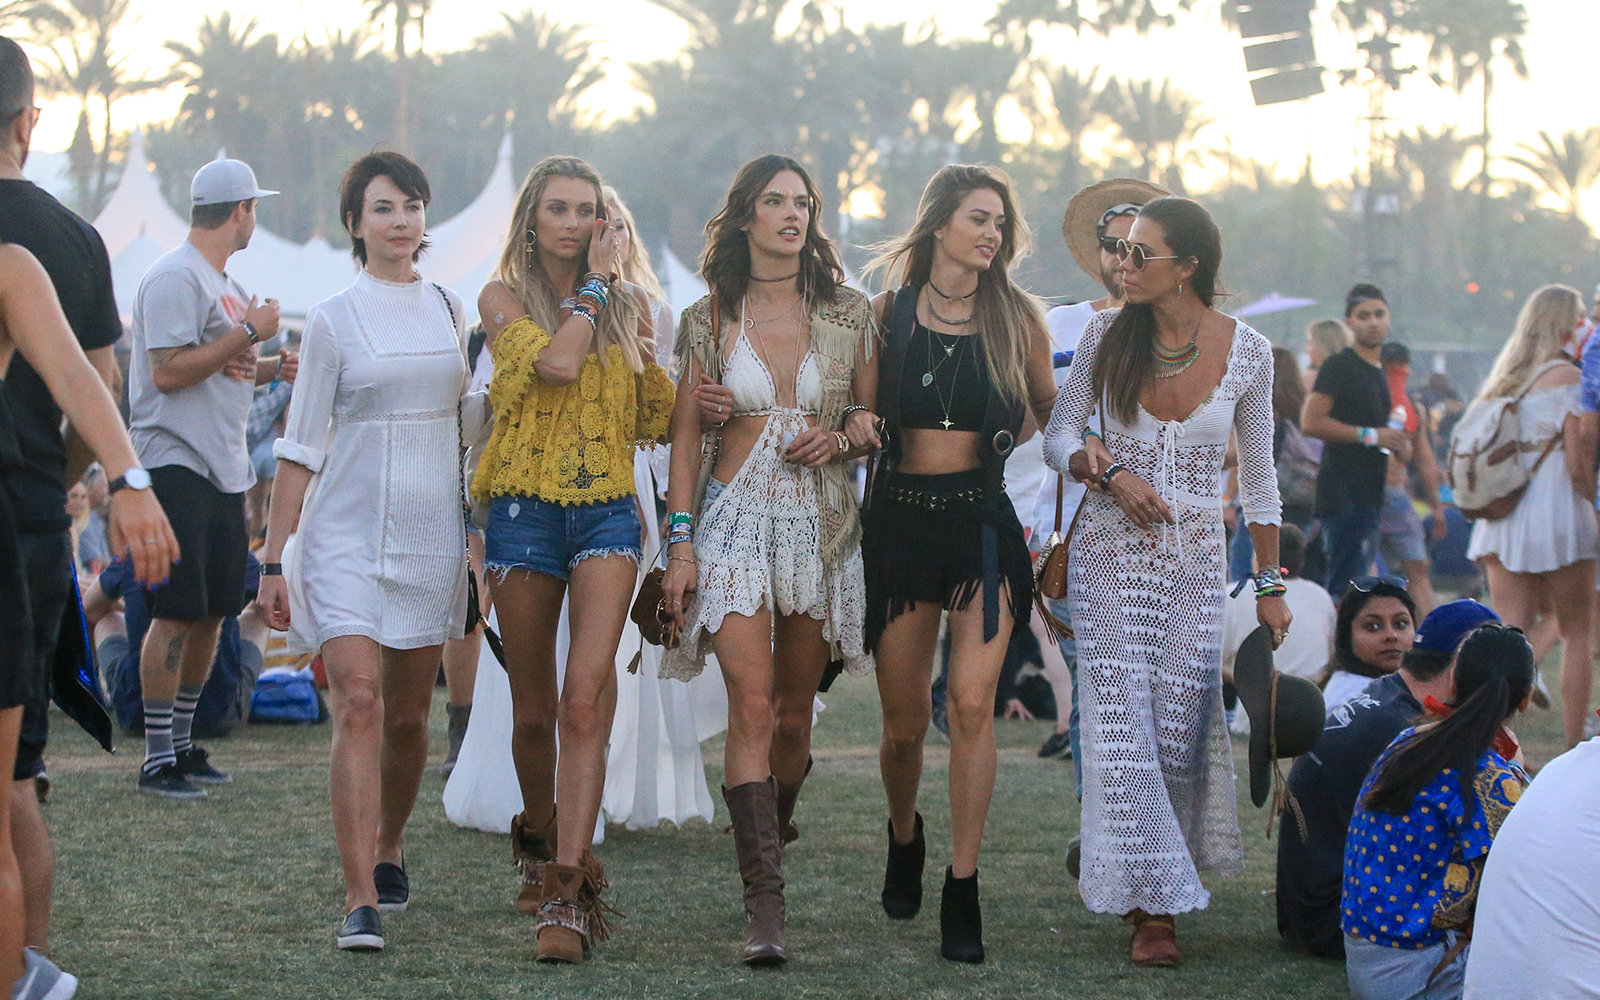 2019 Coachella News, Pictures, and Videos | E! News UK